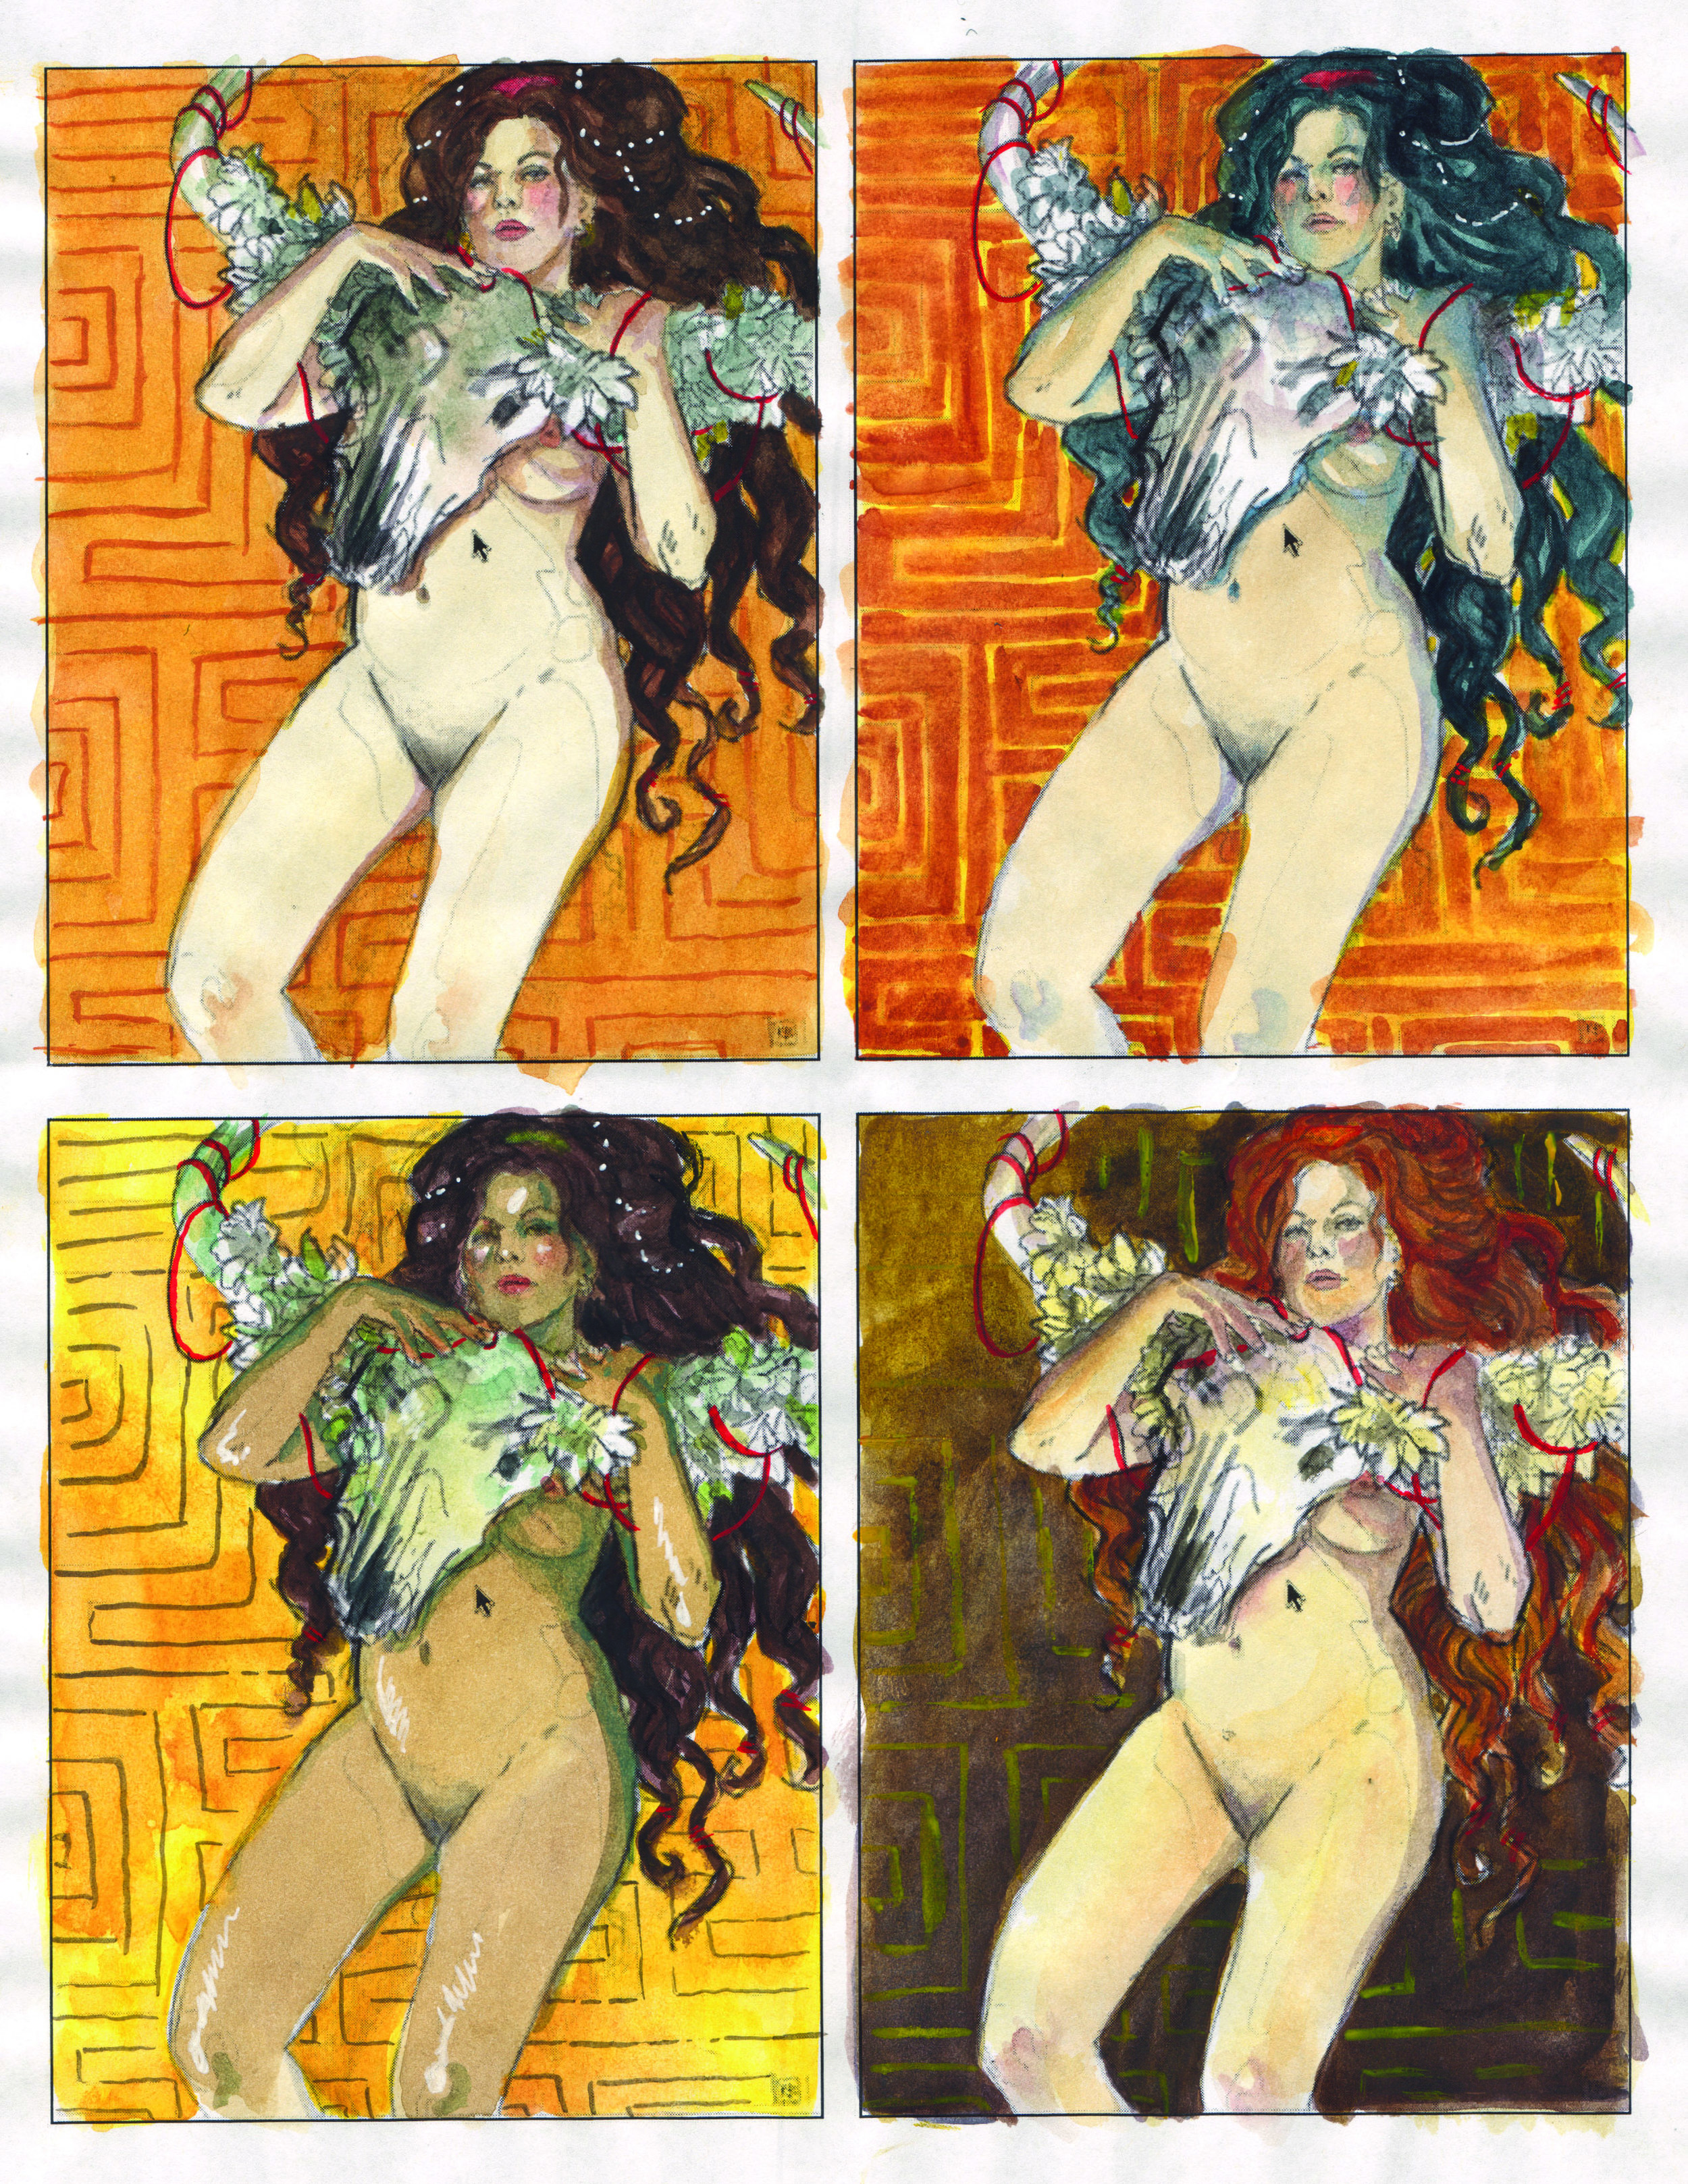 Revised color study ideas. I think they have a kinda Milo Manara vibe going on.